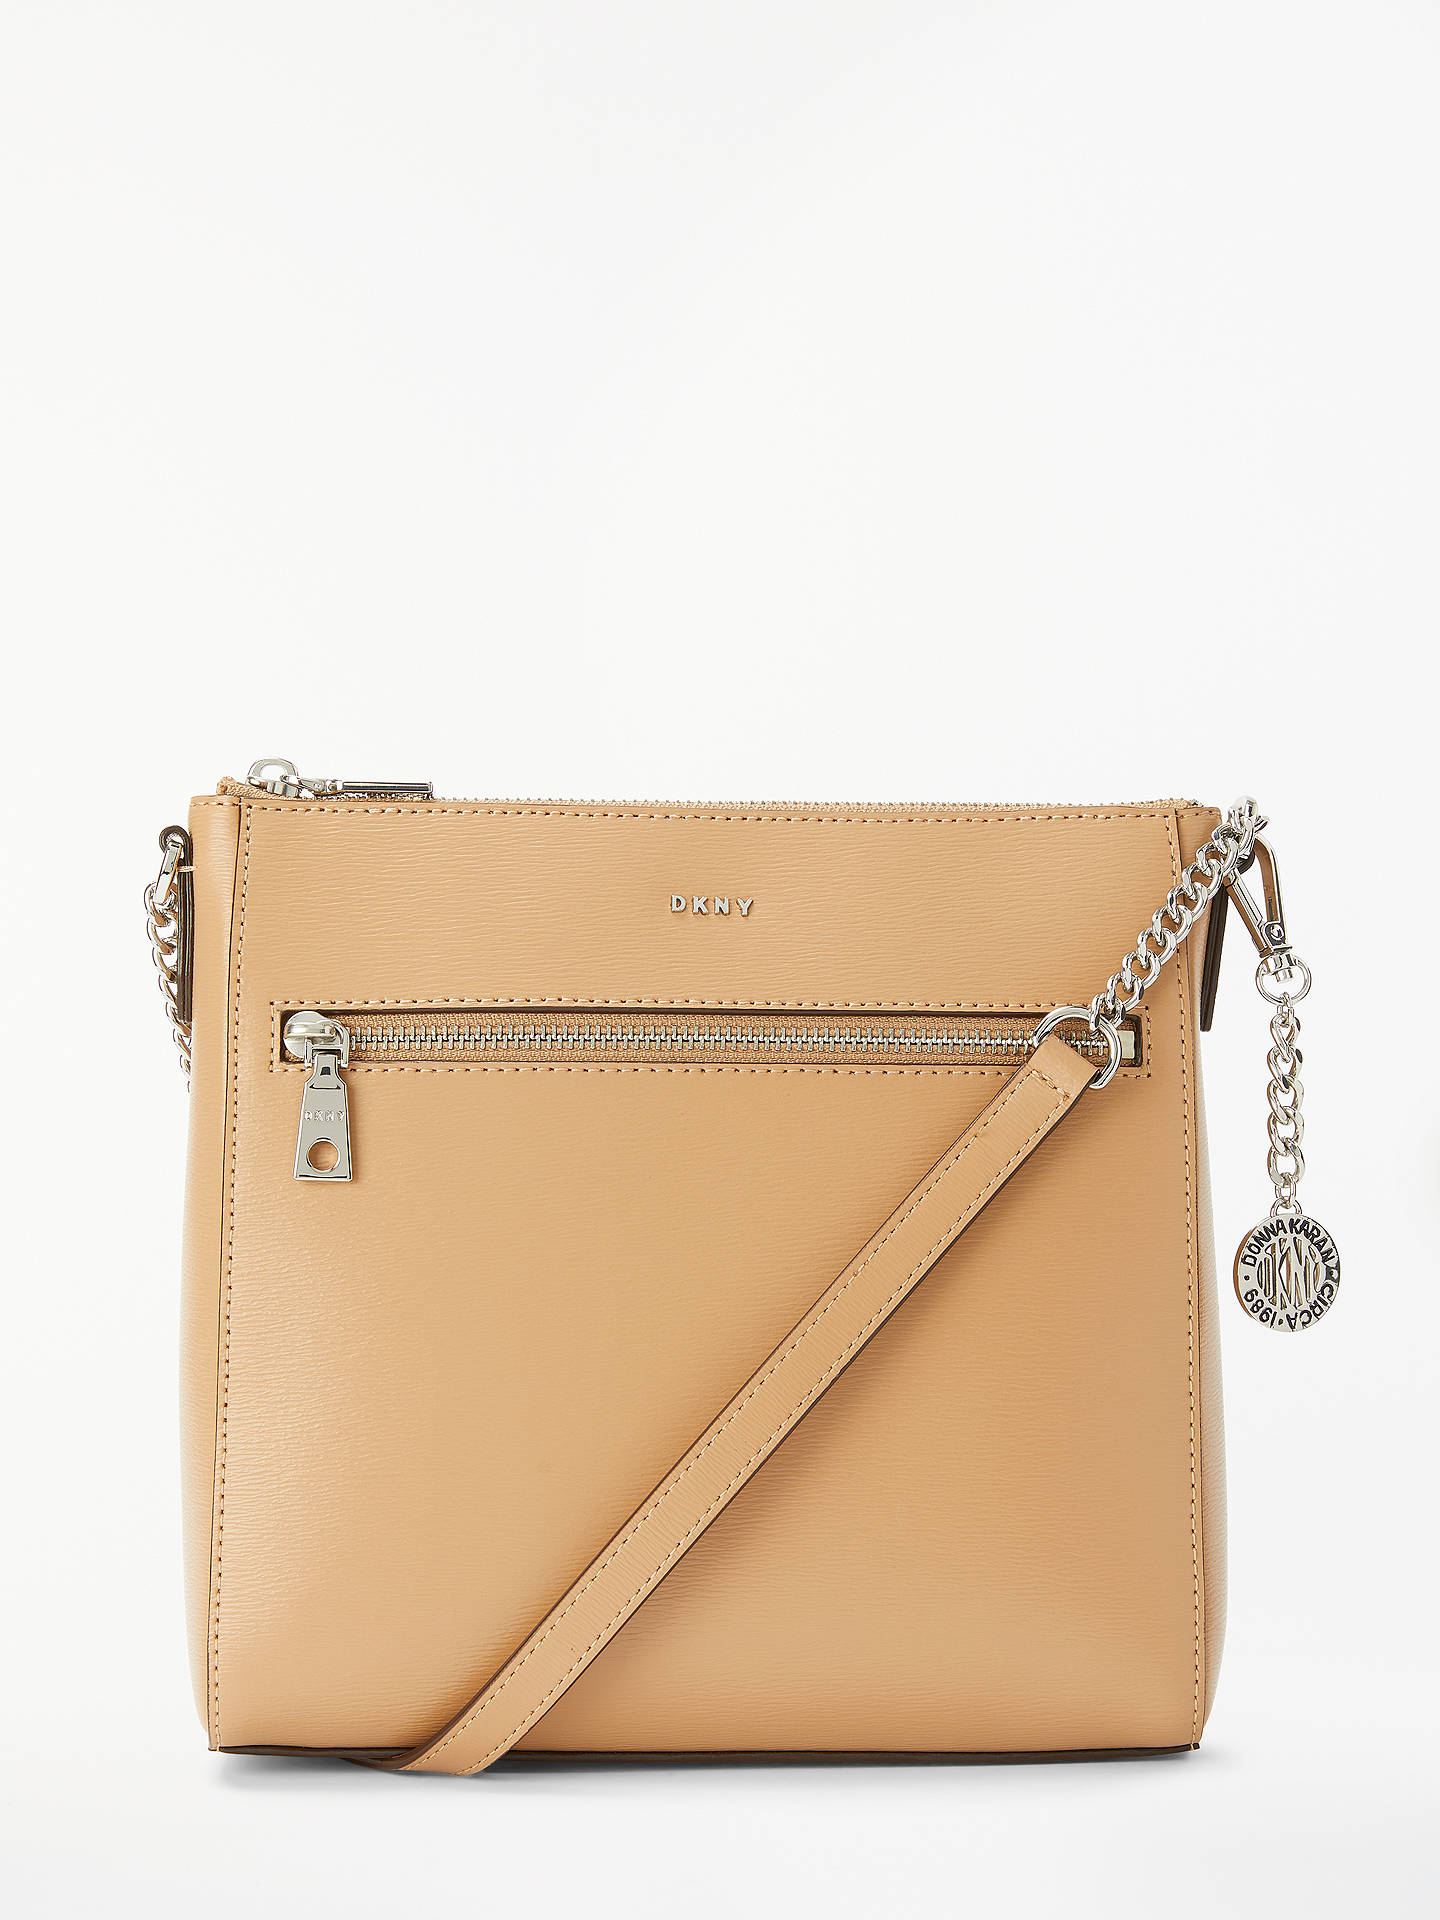 87978afc01 Buy DKNY Bryant Leather Large Zip Top Cross Body Bag, Camel Online at  johnlewis.